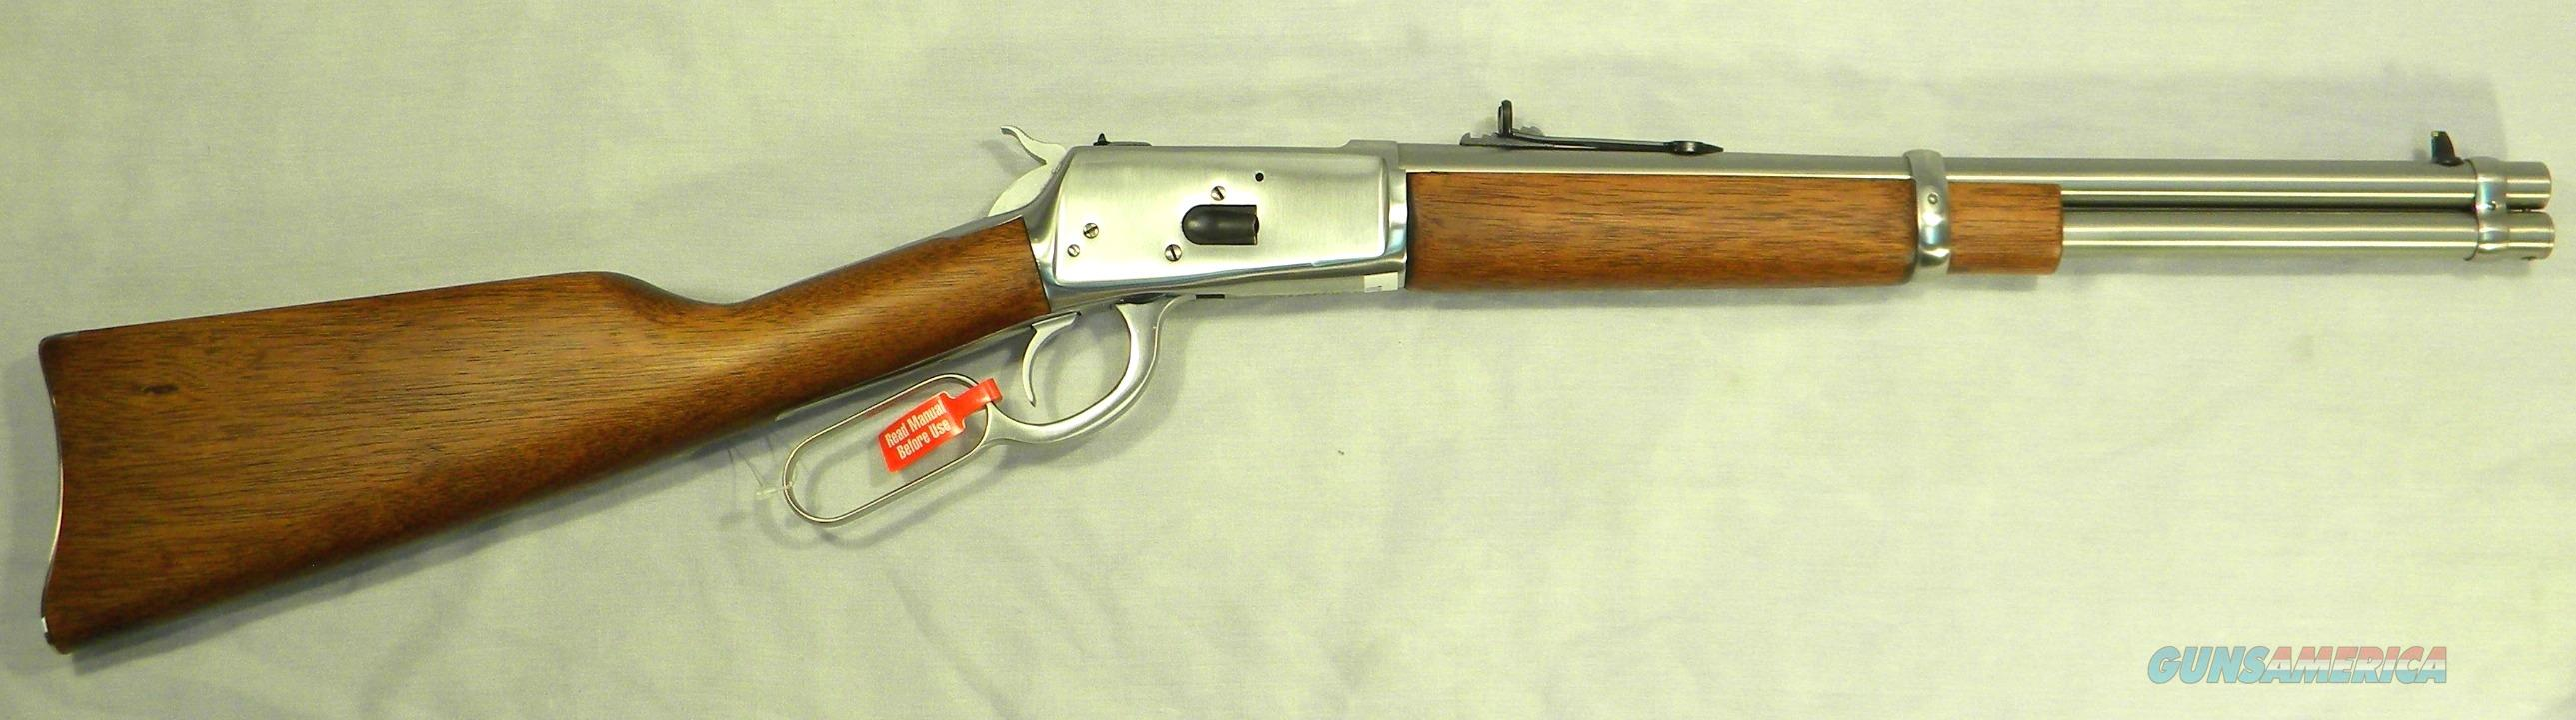 """Rossi R92, .45 Colt Lever-Action Rifle, 16"""" Stainless, New In Box  Guns > Rifles > Rossi Rifles > Cowboy"""